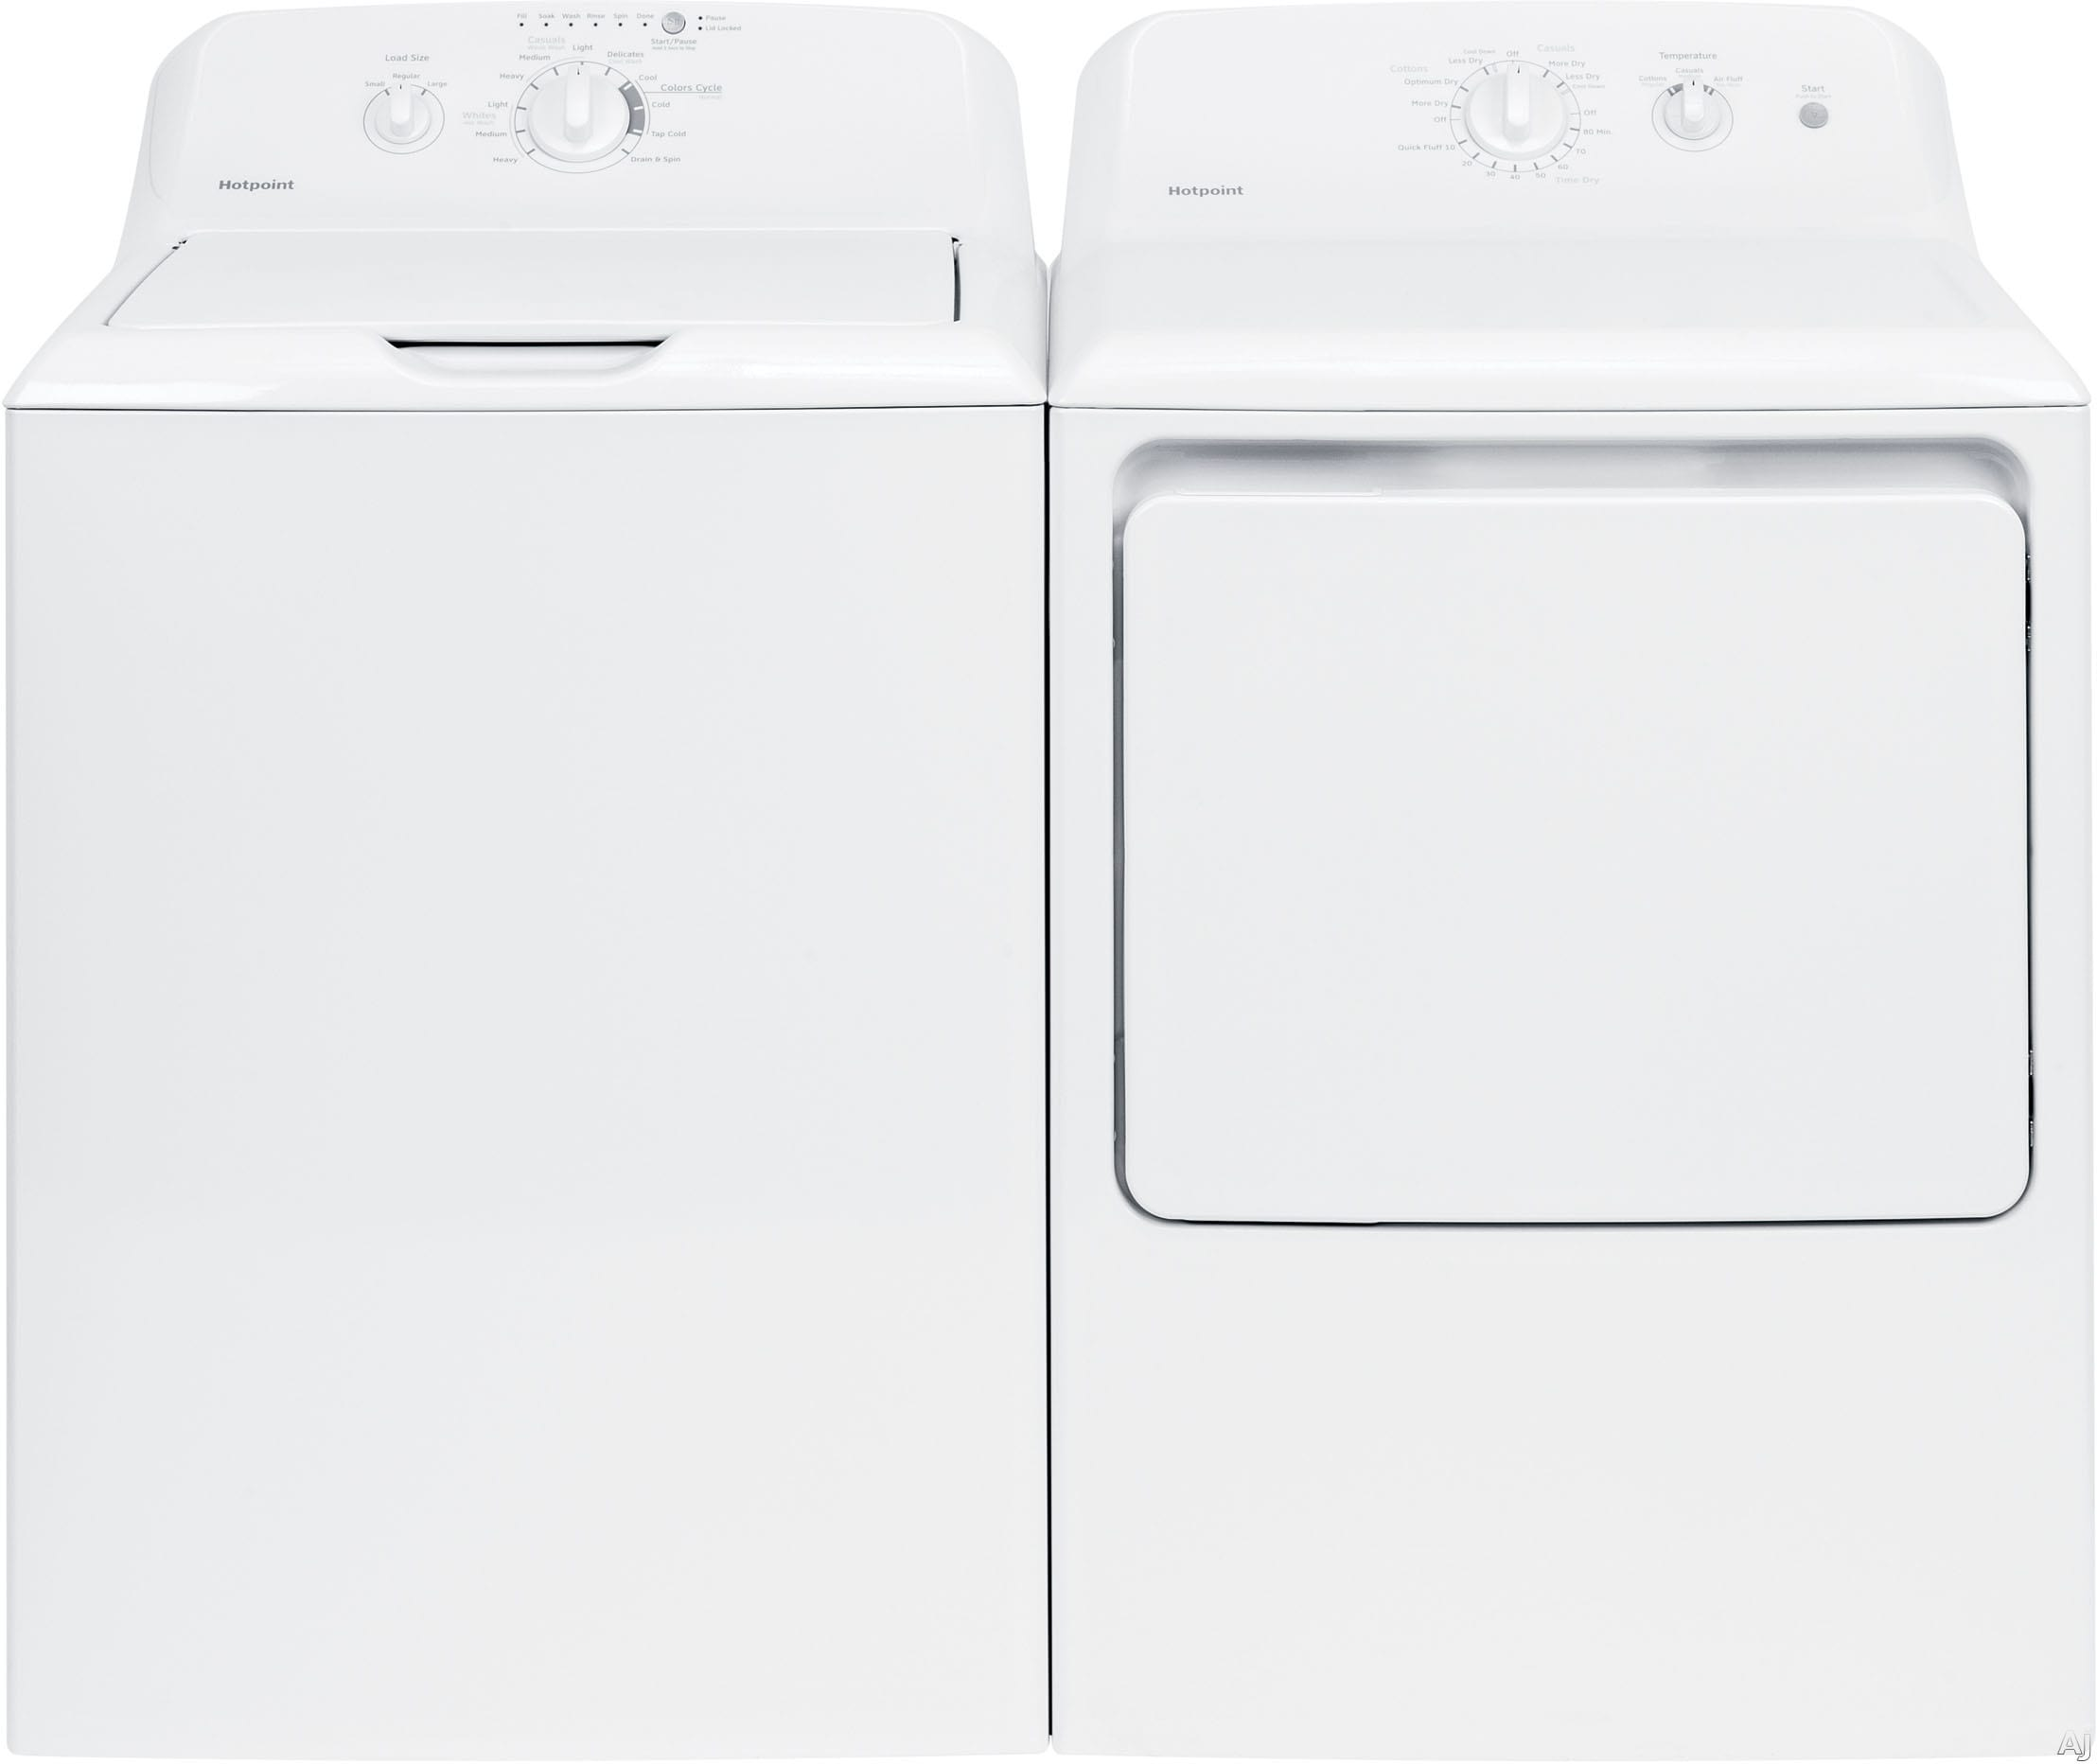 hotpoint washer dryer instructions